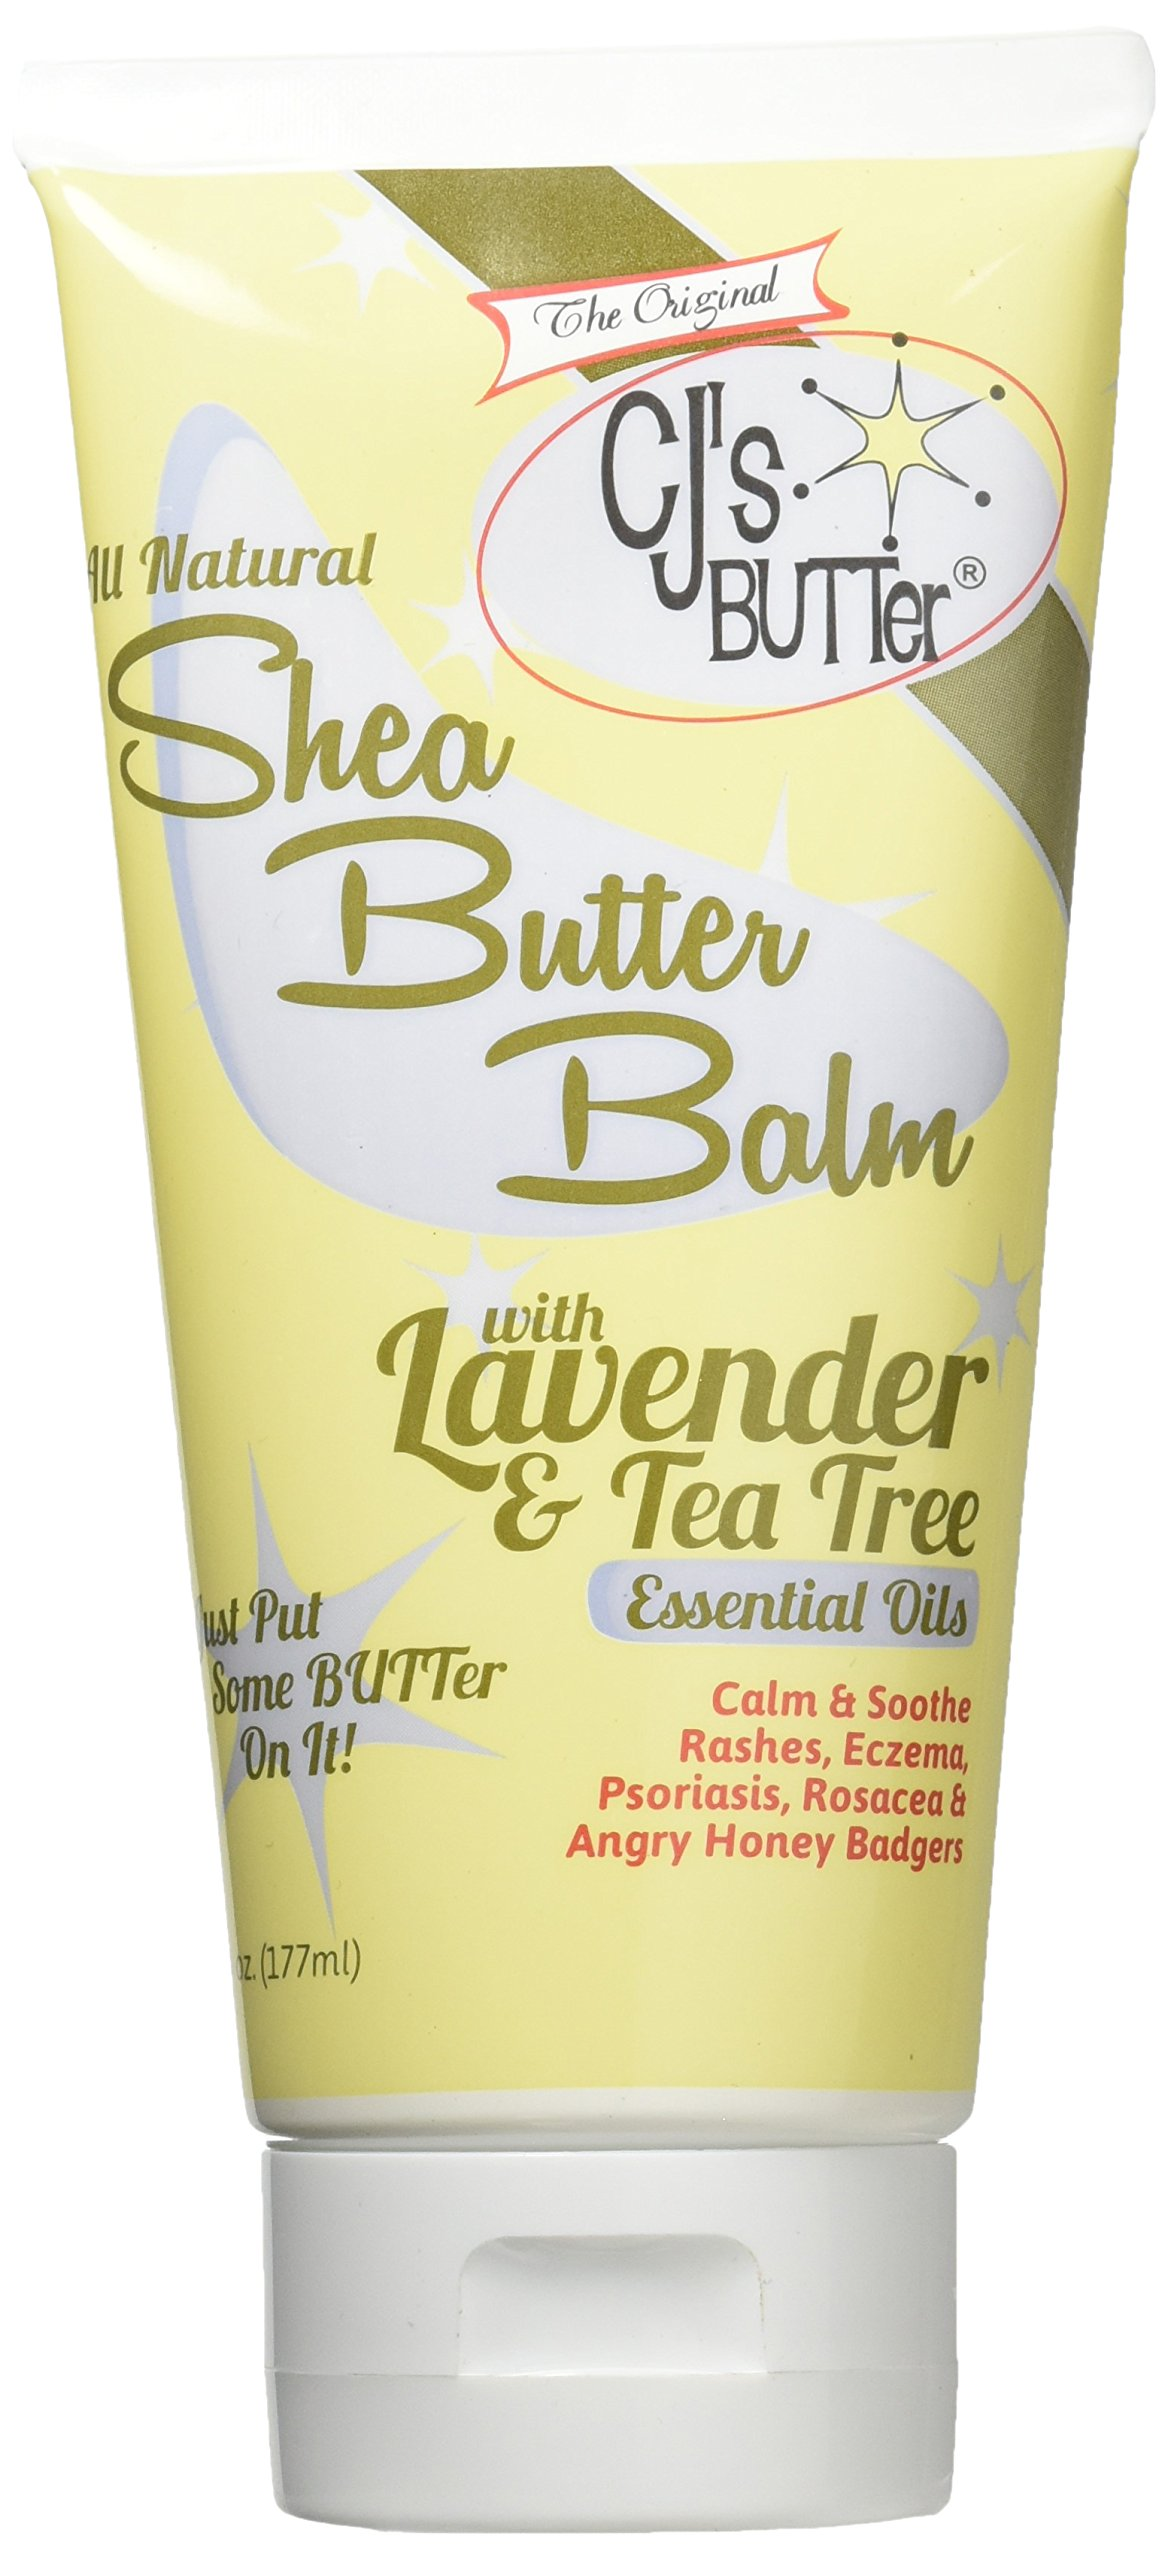 The Original CJ's BUTTer® All Natural Shea Butter Balm - Lavender & Tea Tree, 6 oz. Tube